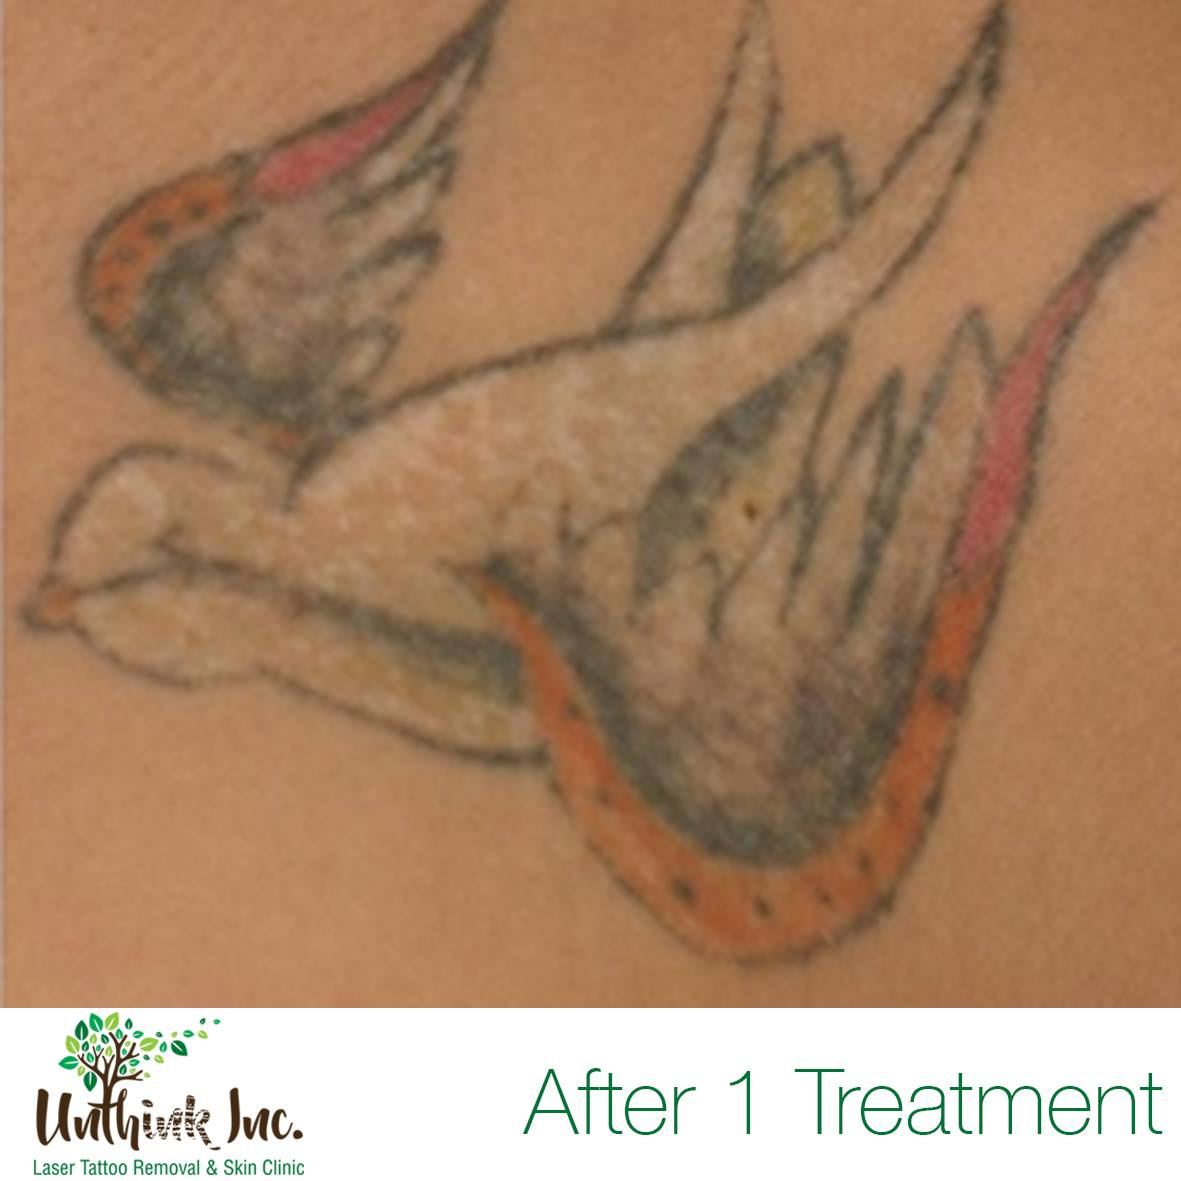 unthink inc laser tattoo removal before and after results